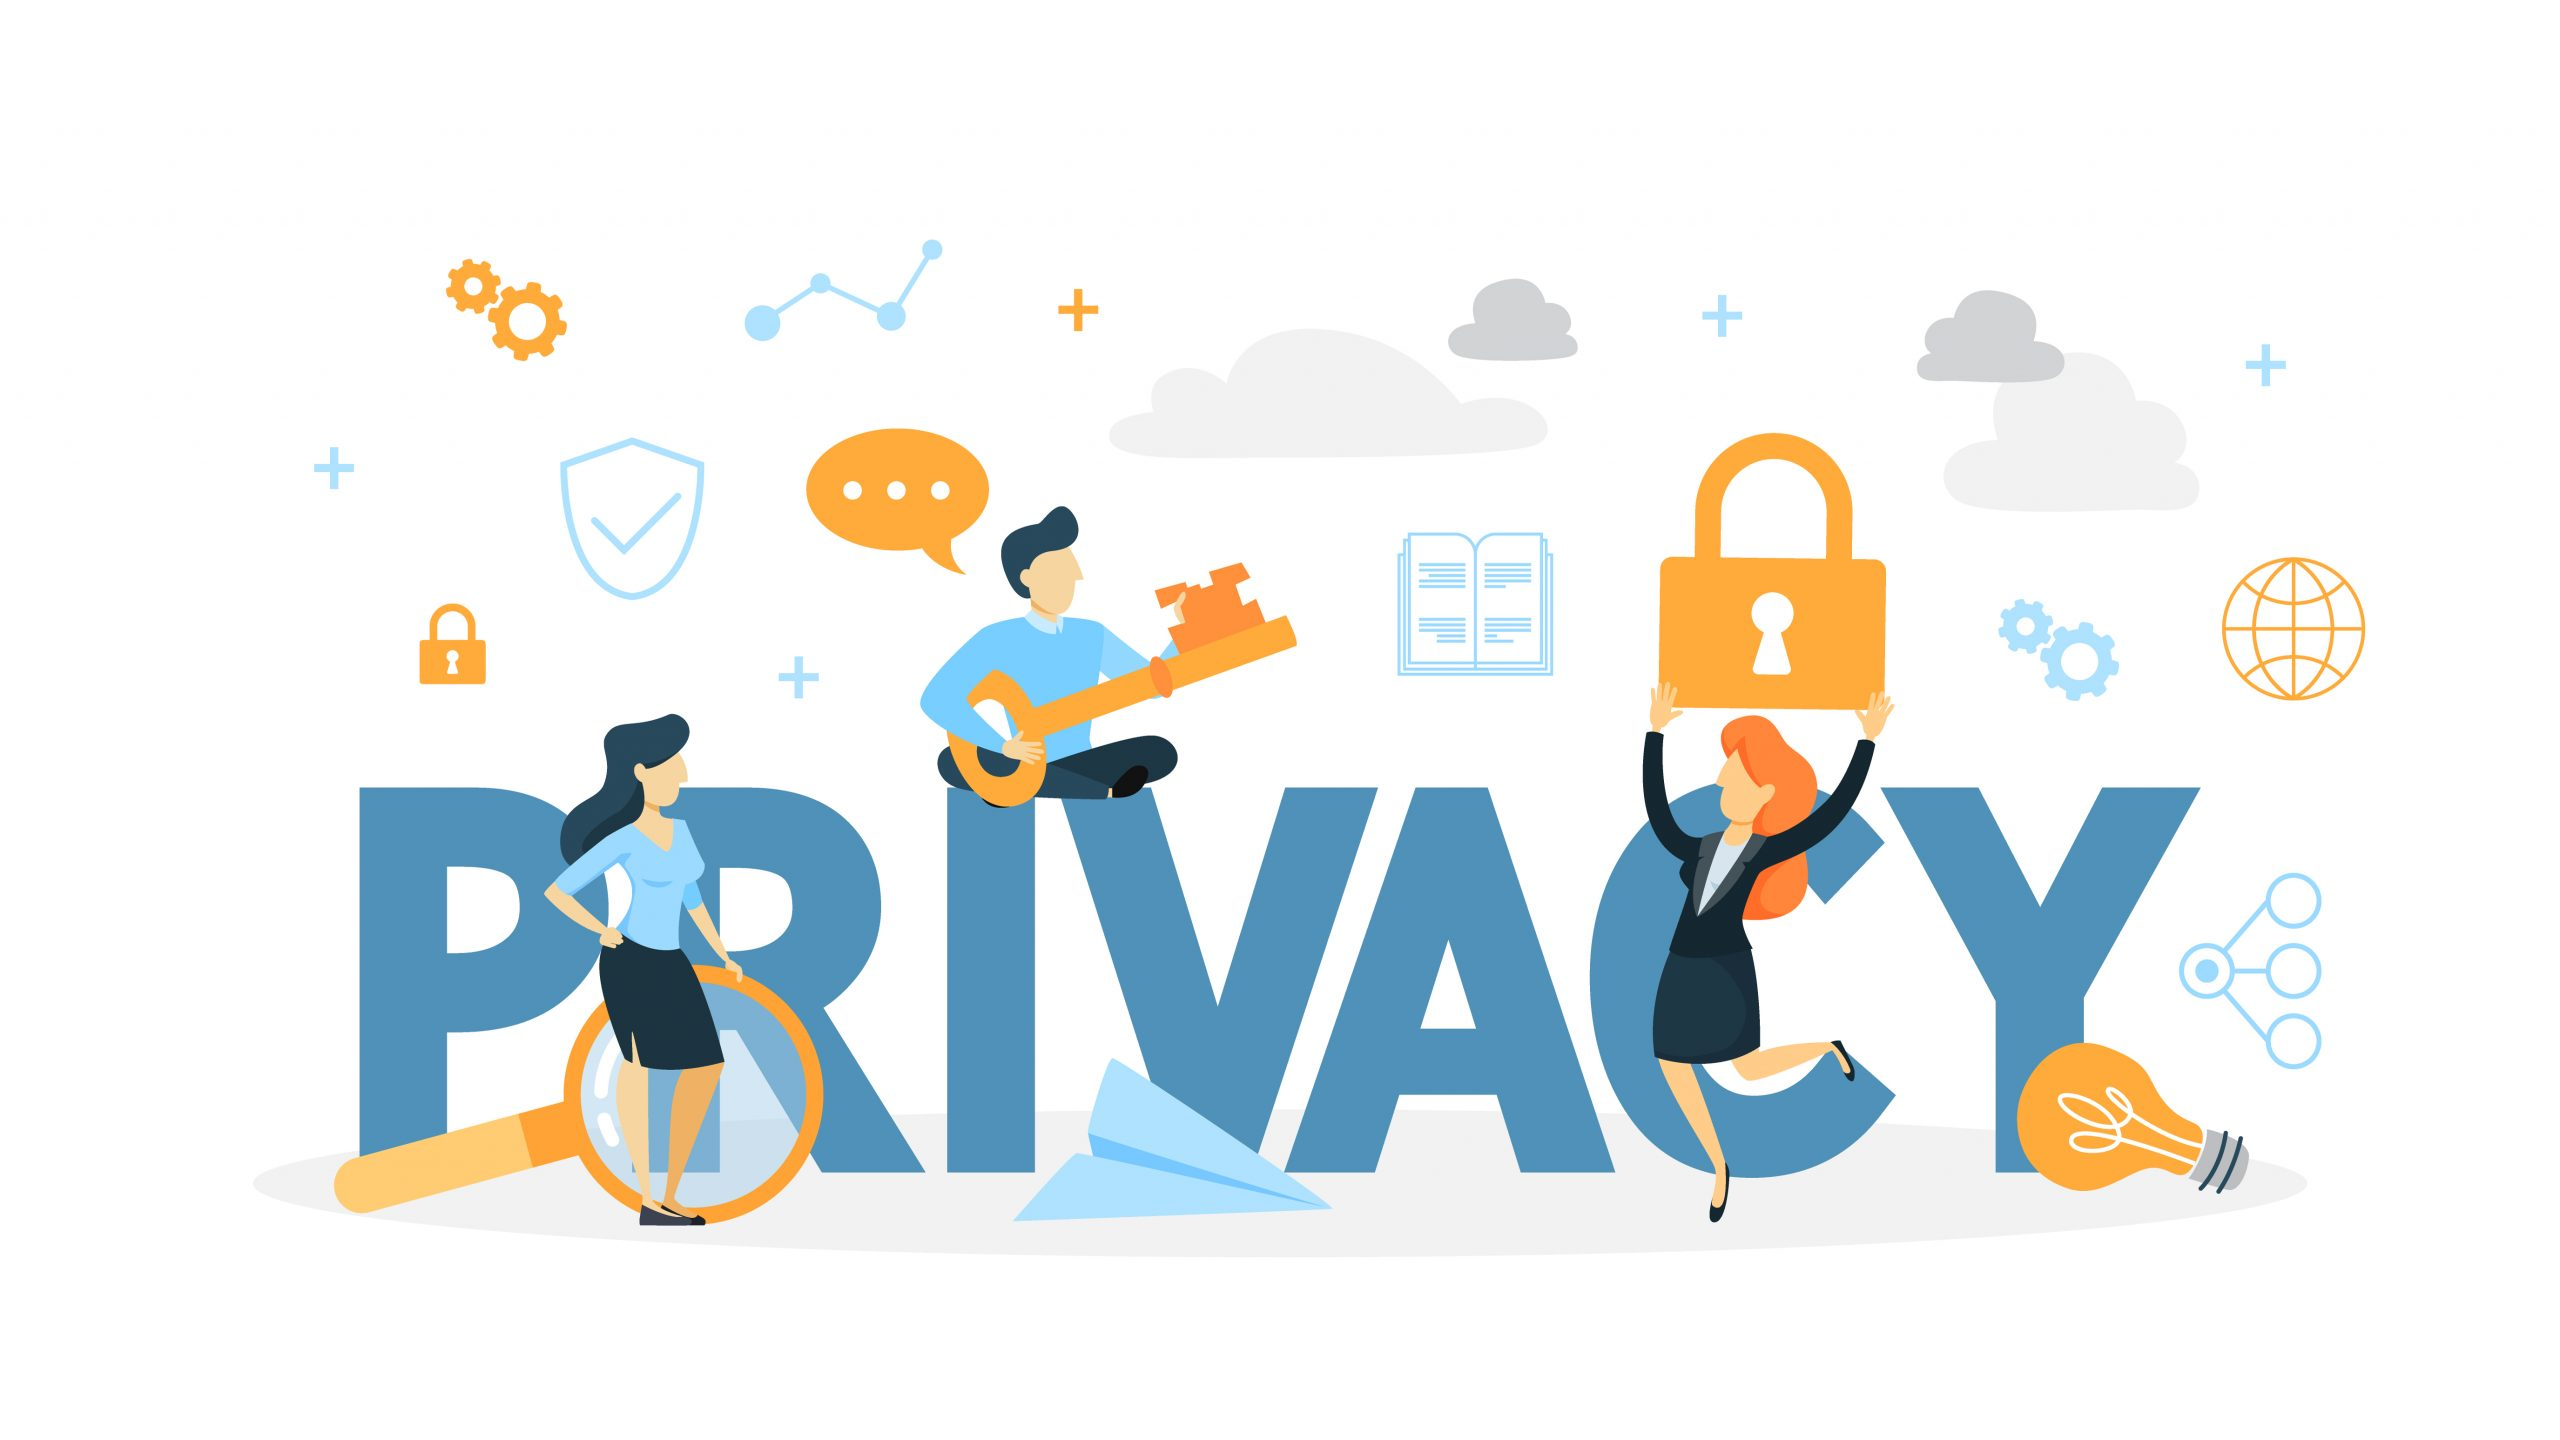 Data and user privacy concept illustration